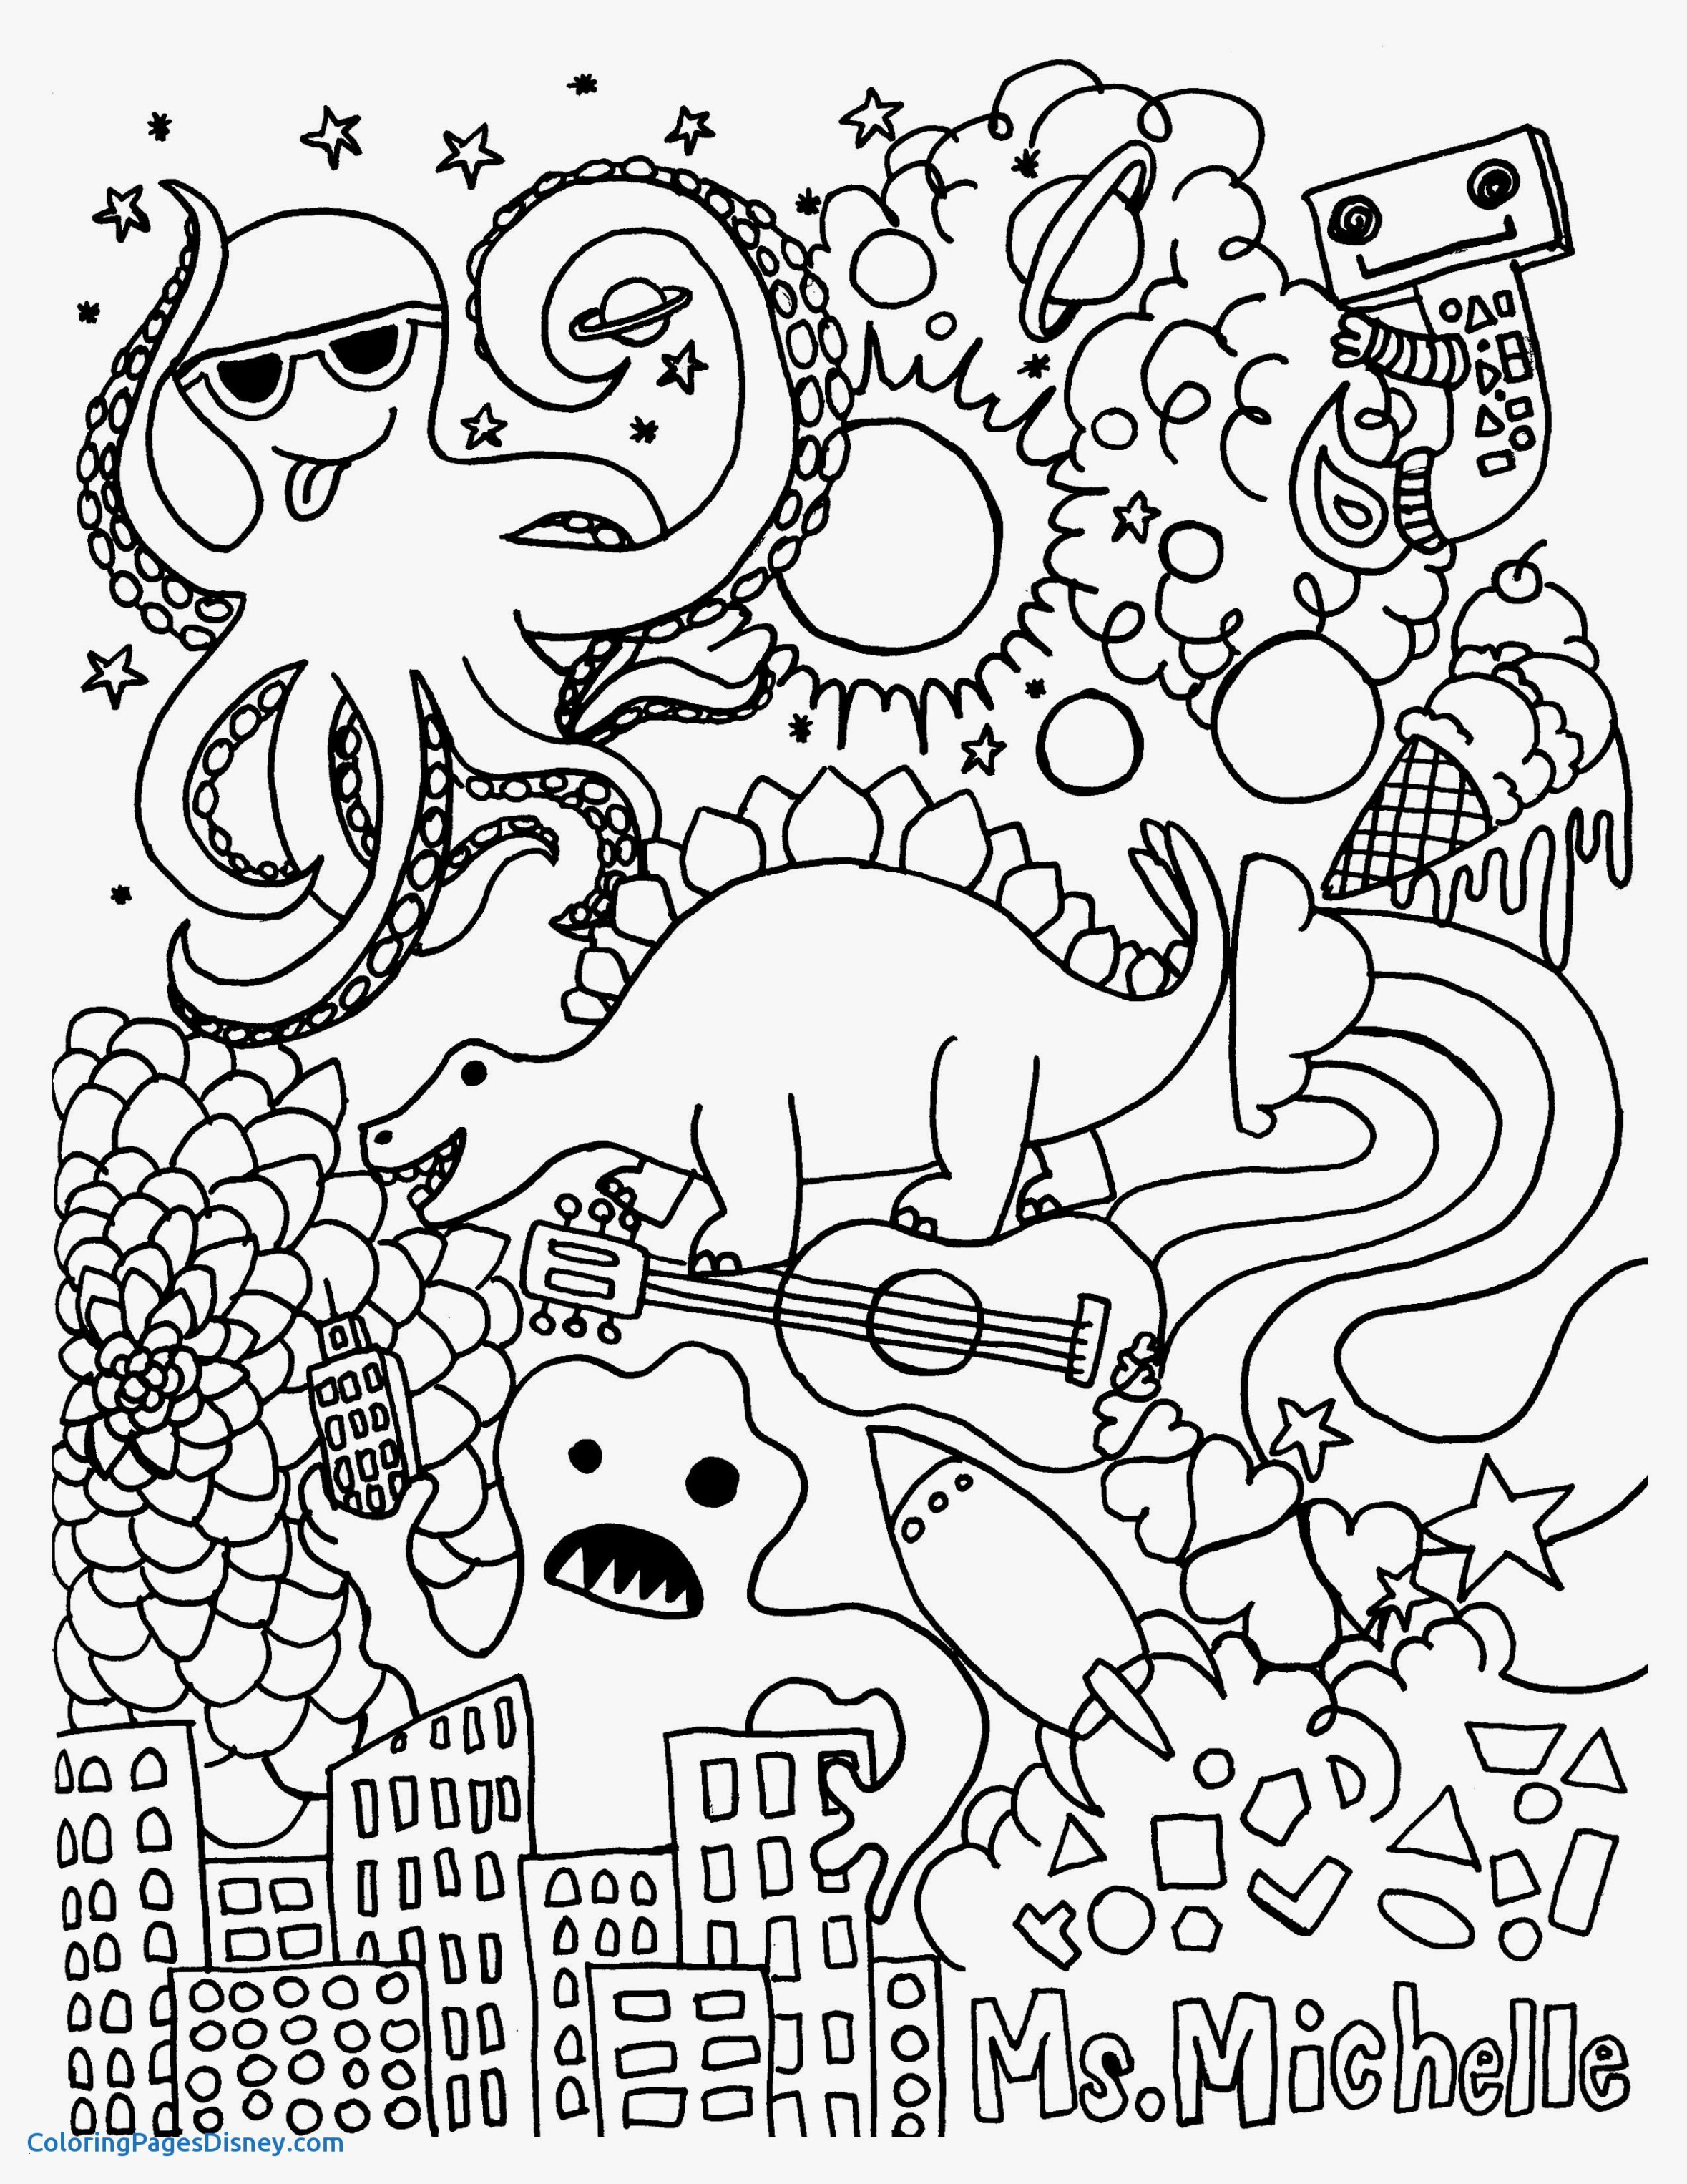 Bubble Guppy Coloring Pages  Printable 6a - Save it to your computer